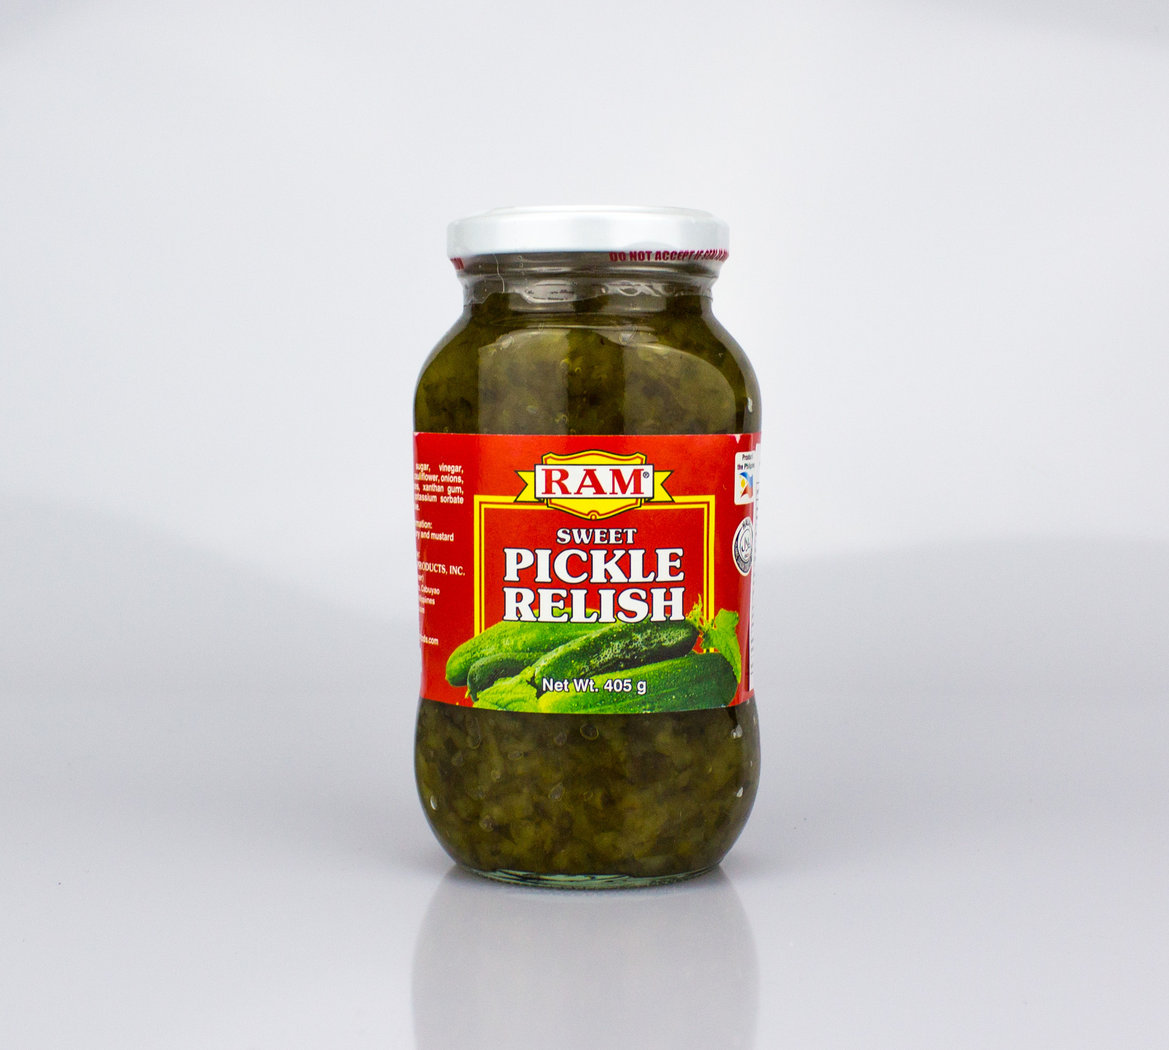 RAM Sweet Pickle Relish (405 g)